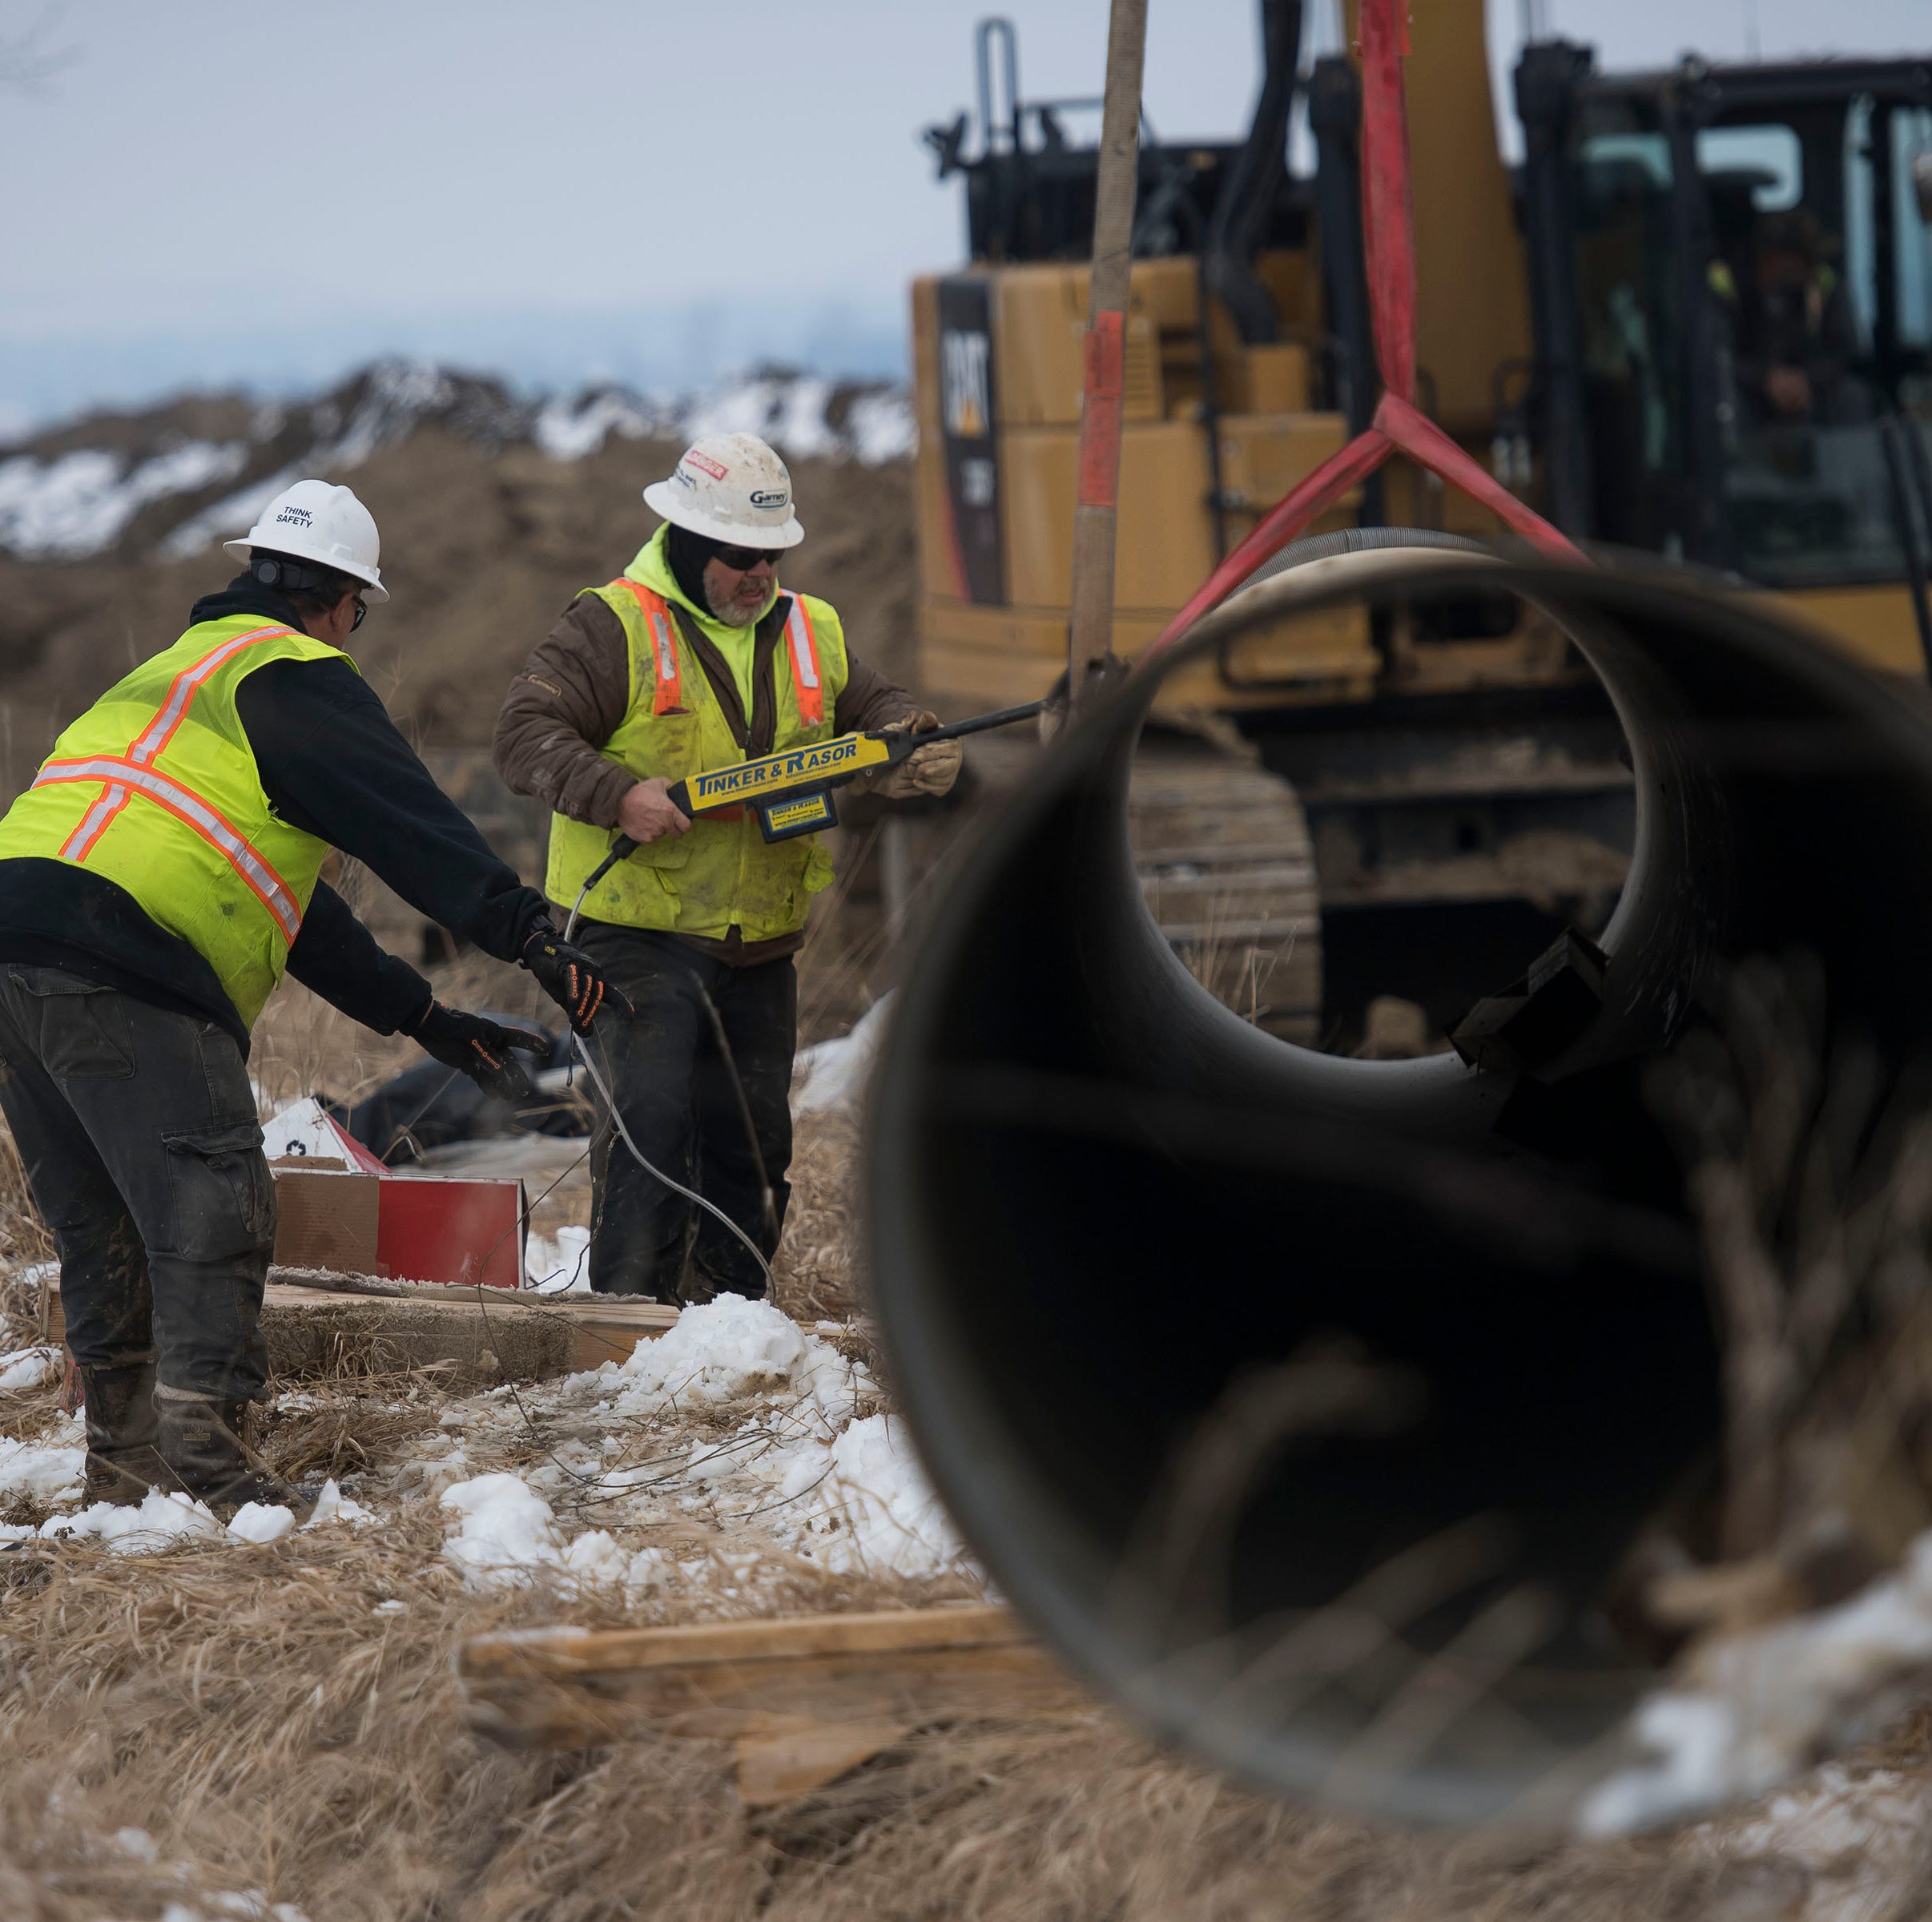 NISP pipeline: Will Larimer County approve a route similar to rejected Thornton pipeline?